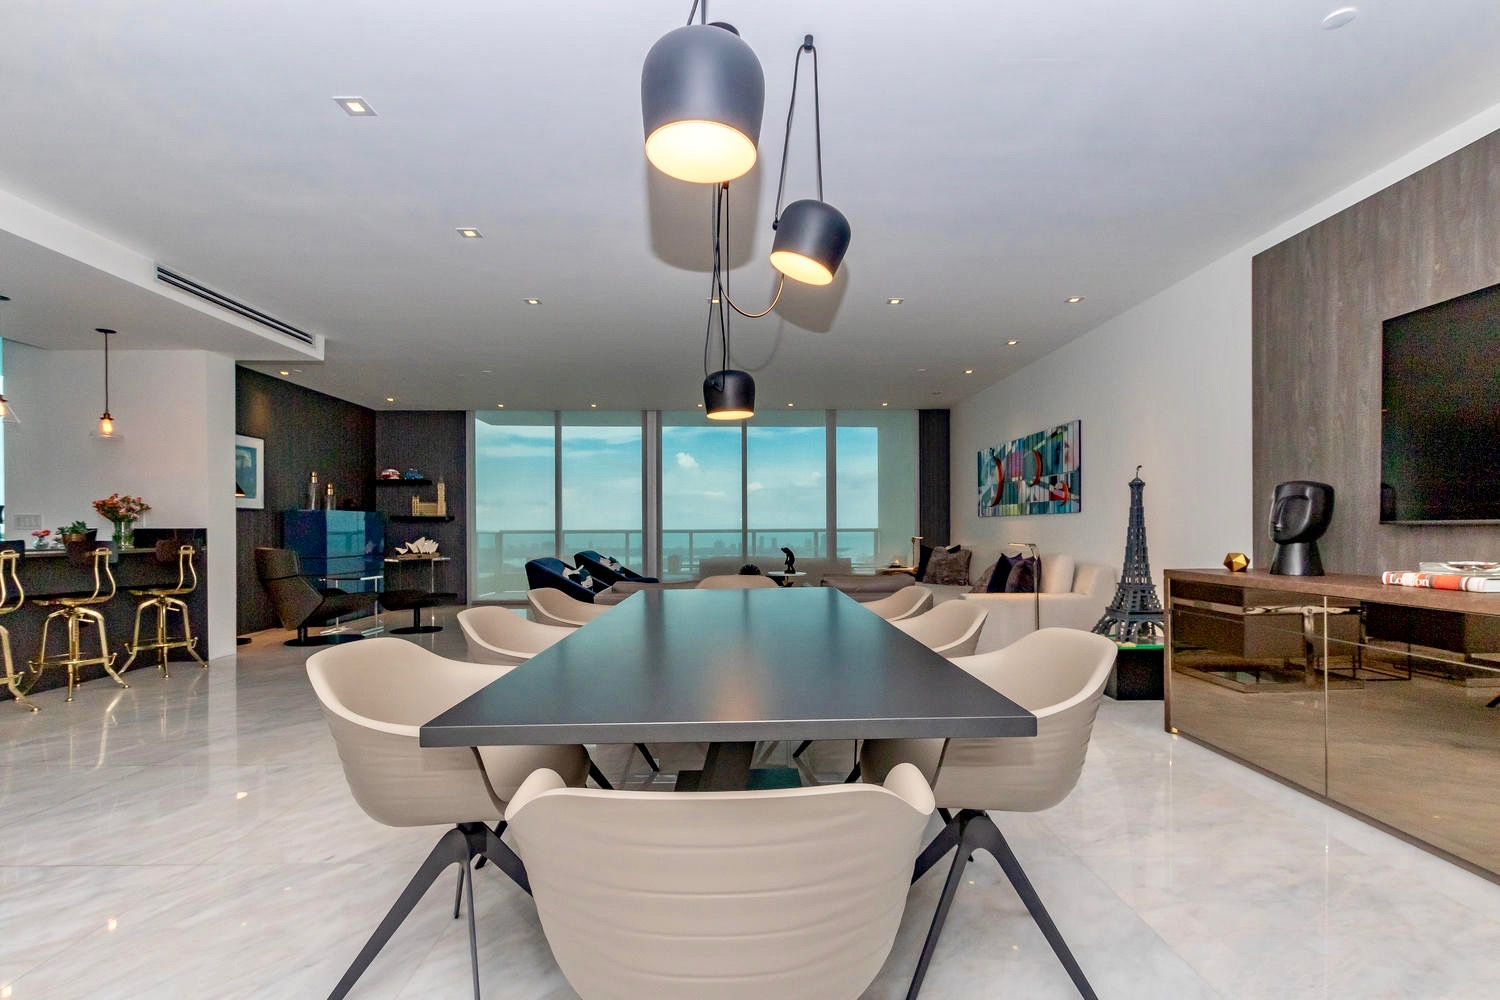 900 Biscayne - Interior Design and Decoration